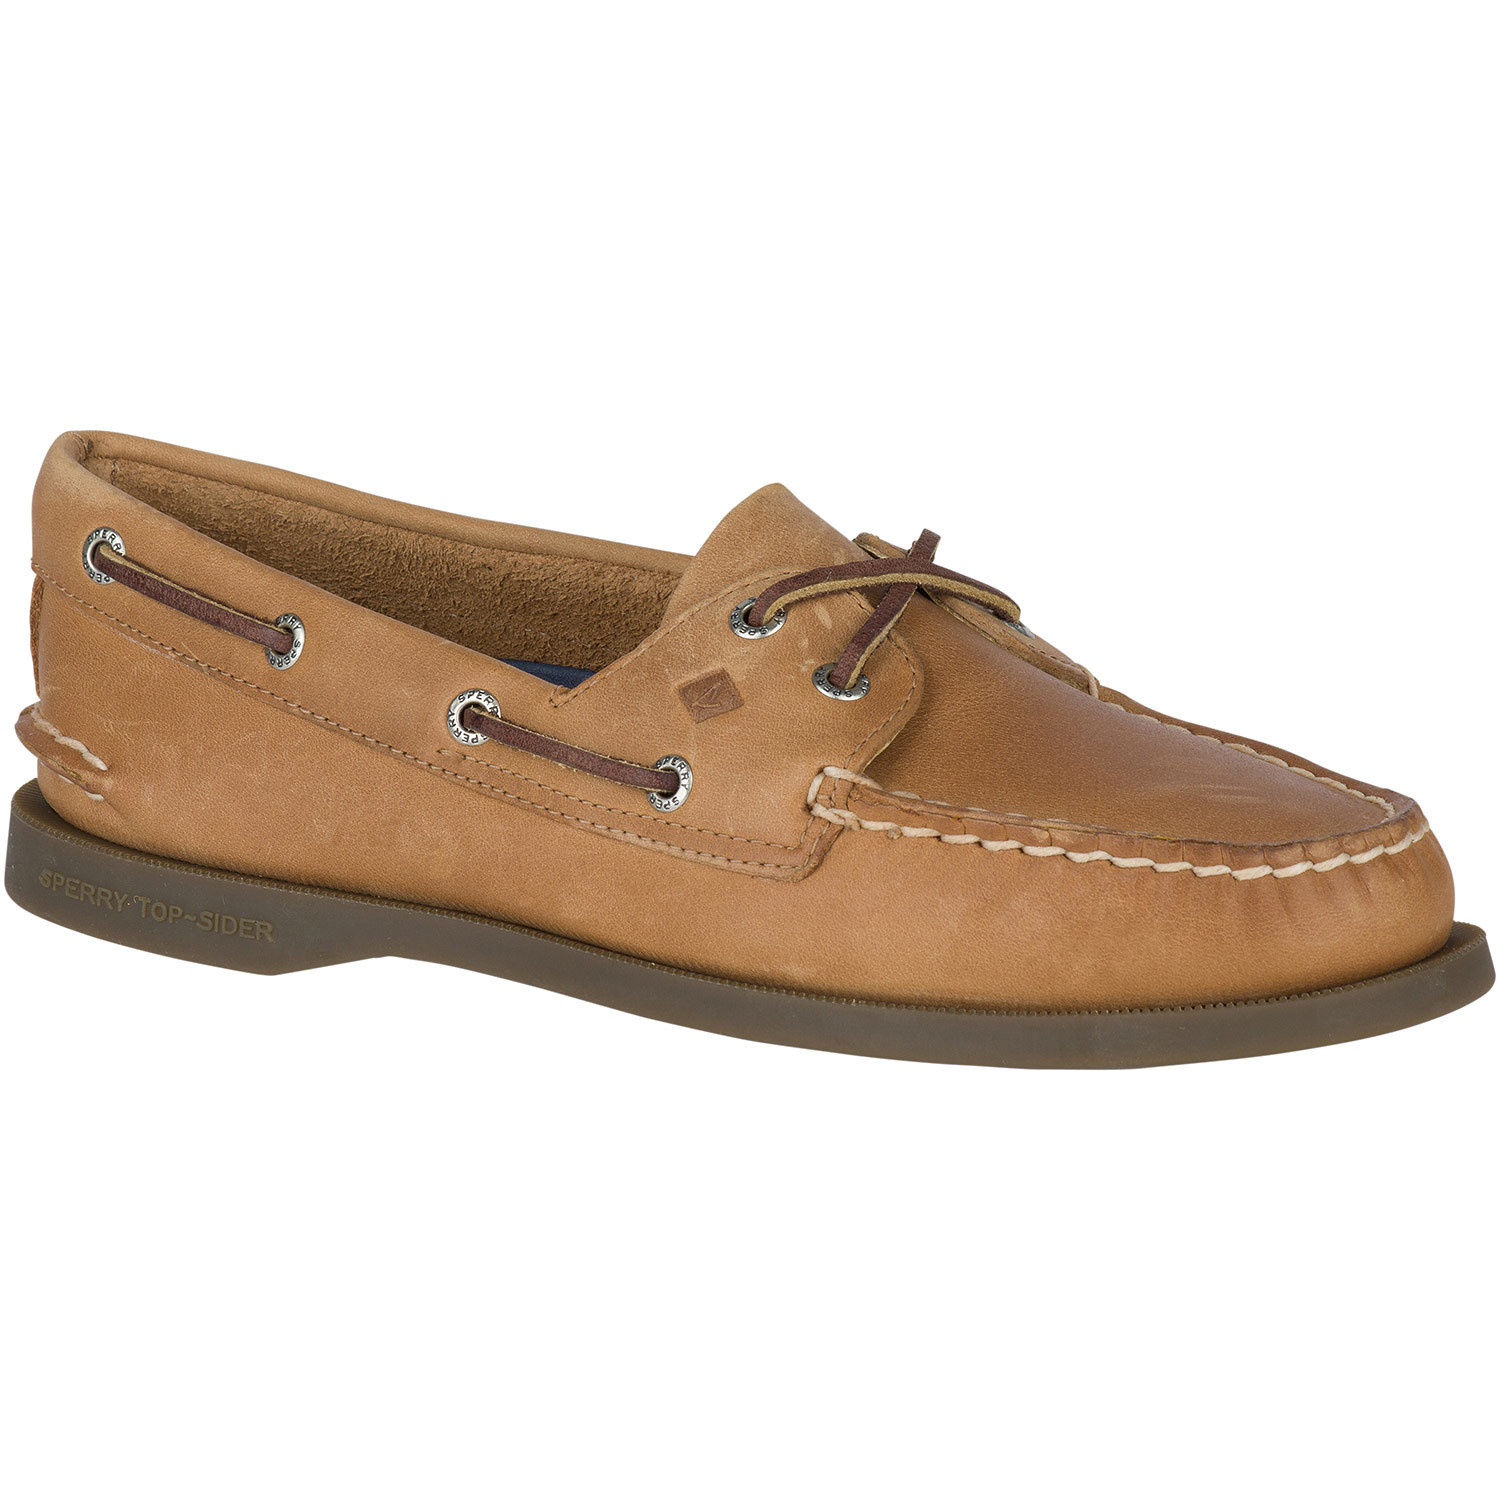 cbff75e864b37 SPERRY Women's Authentic Original® Two-Eye Boat Shoes   West Marine